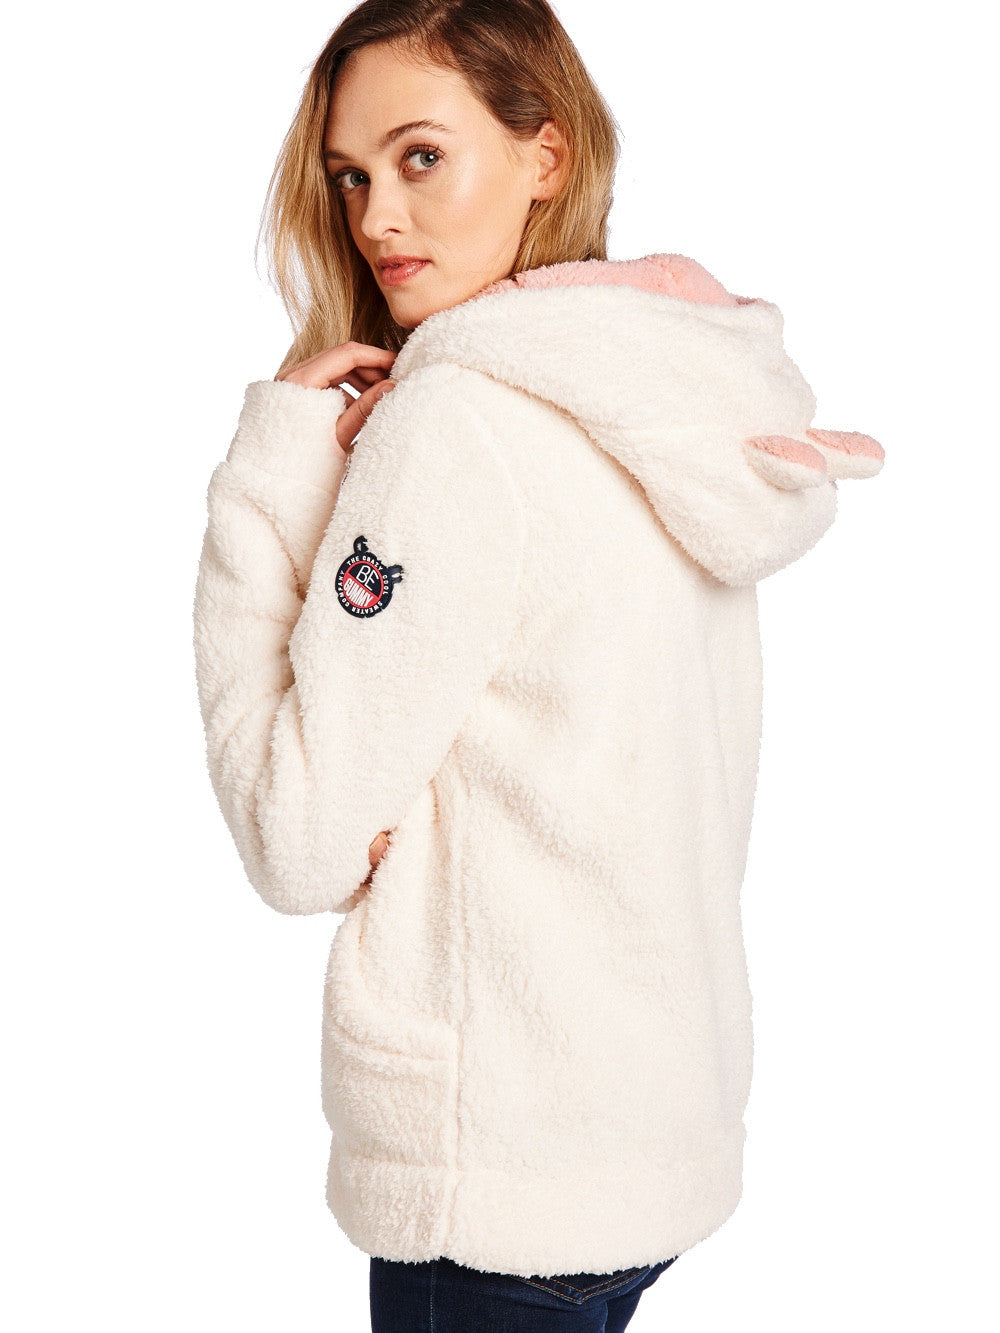 Fresh White Soft Furry Sweater Women